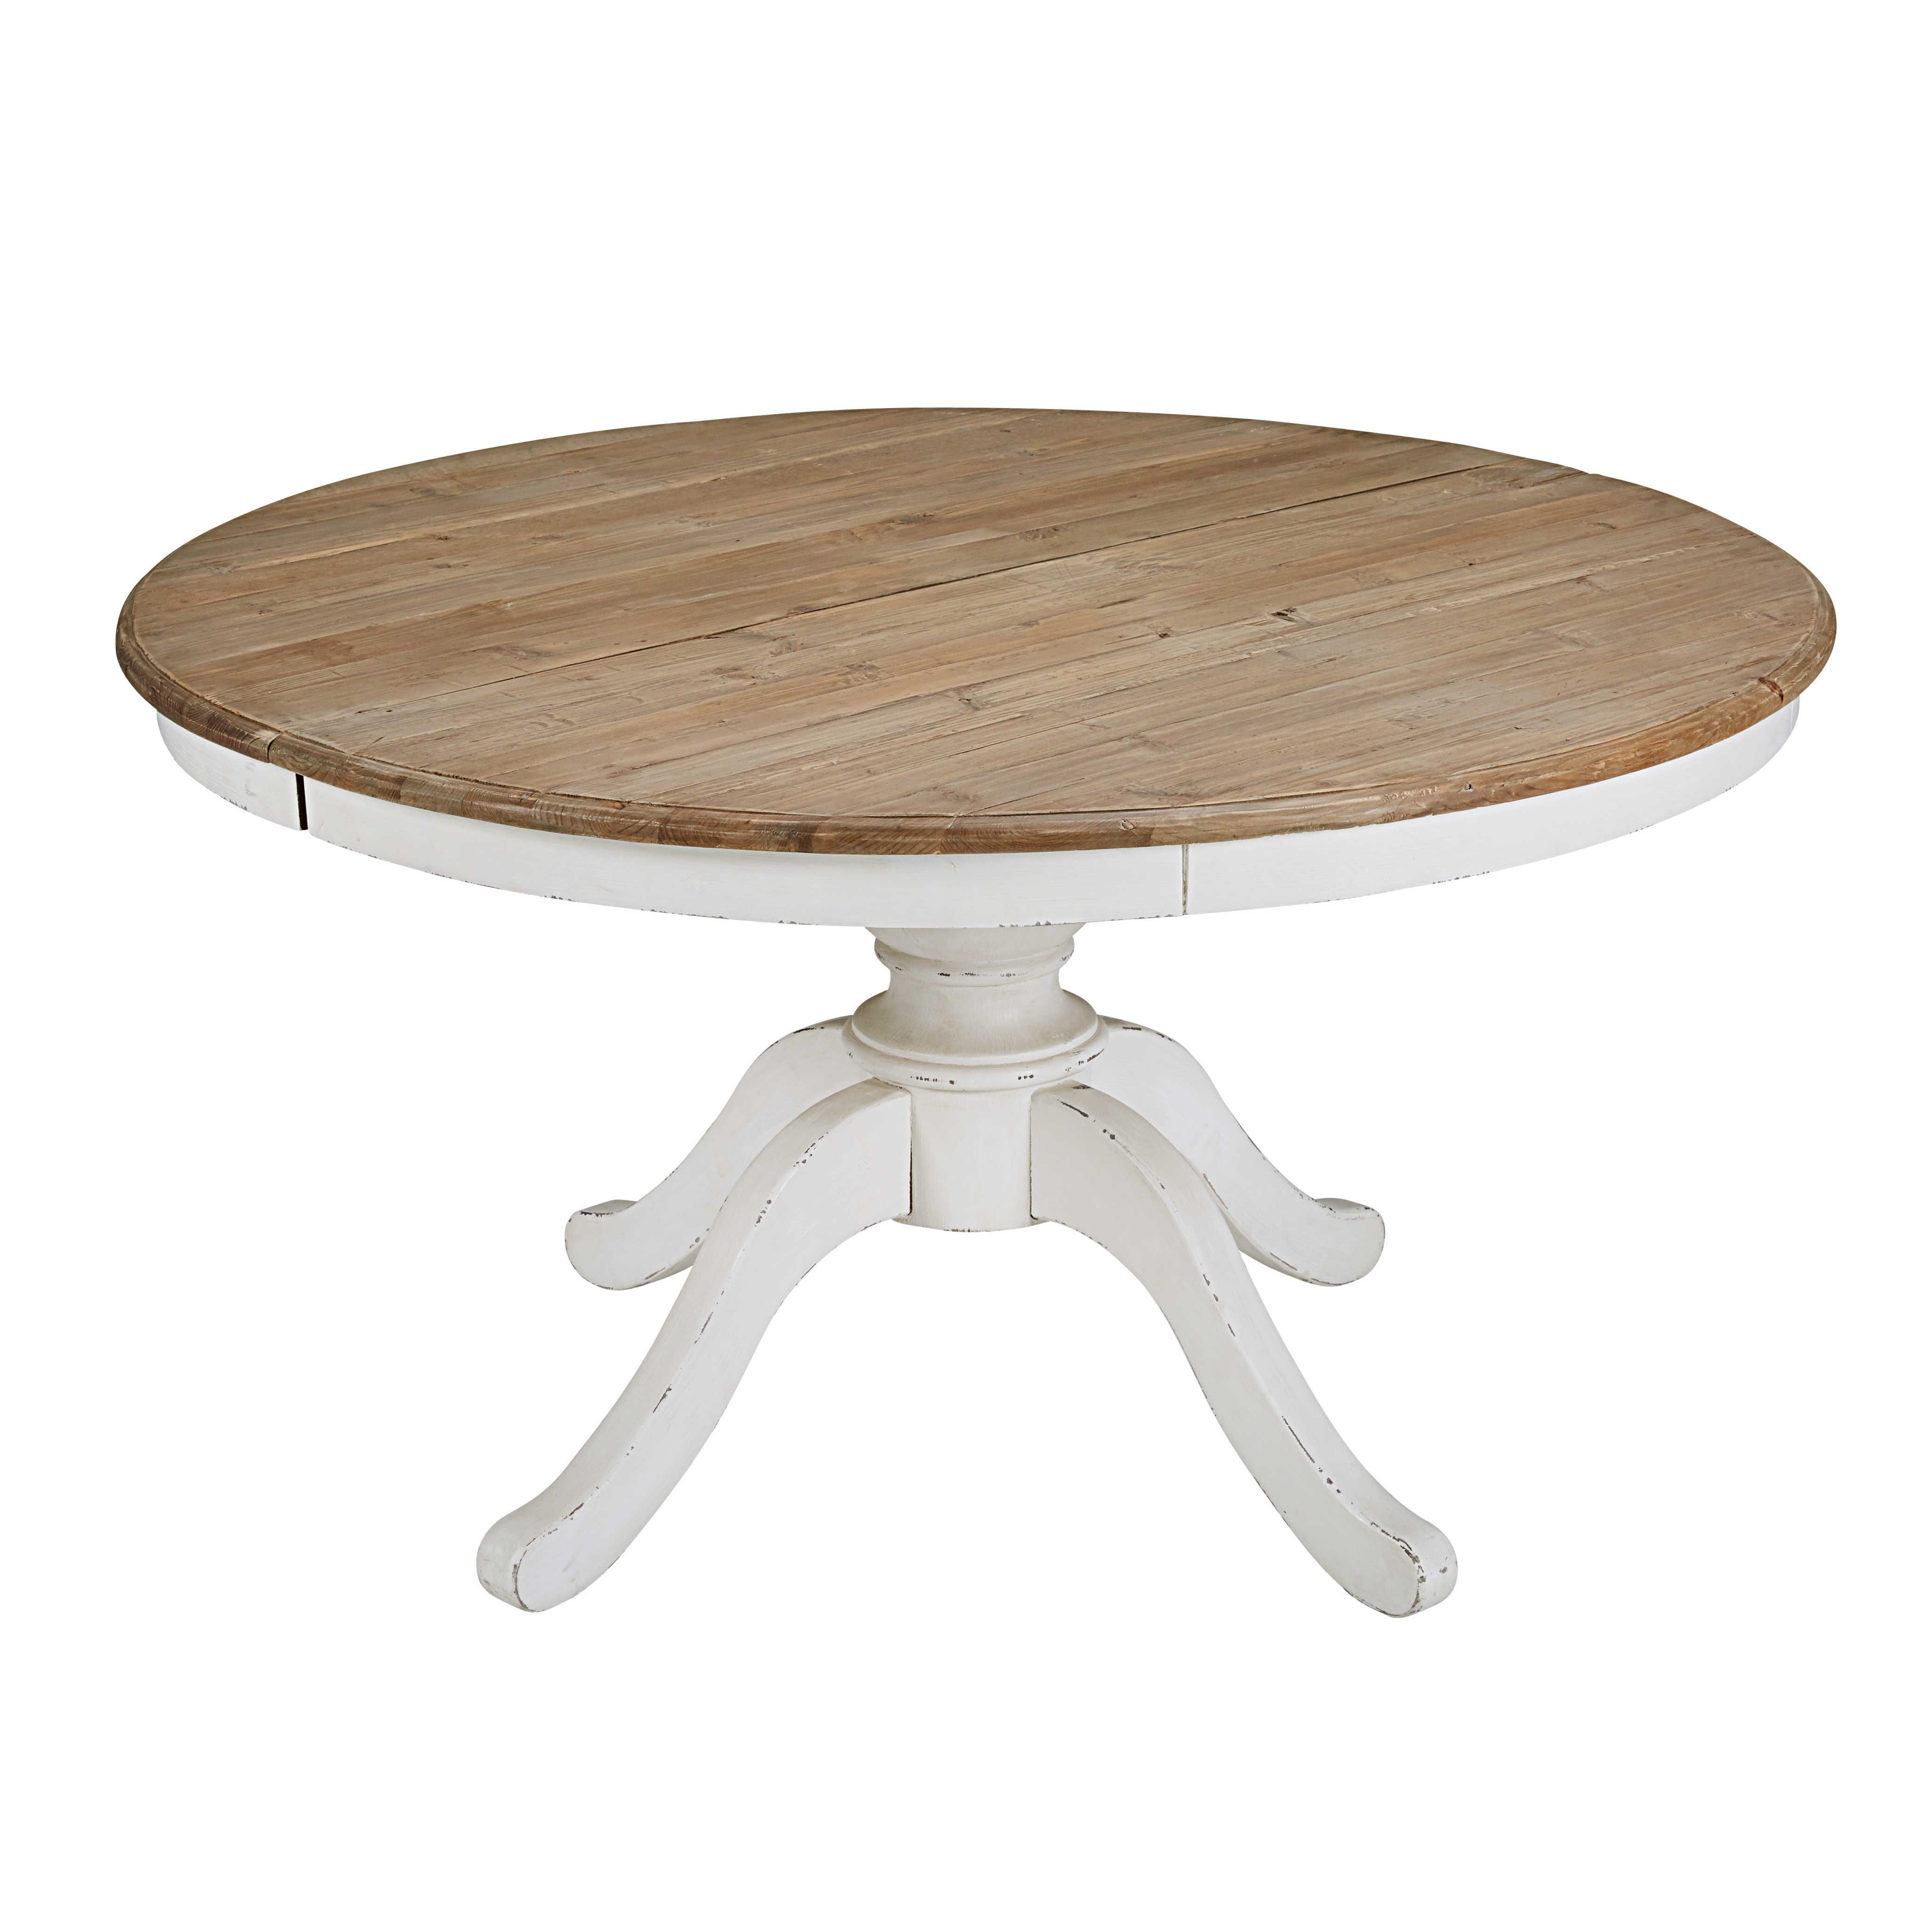 round extendable dining table l 140cm provence table a manger ronde extensible table a manger ronde salle a manger table ronde